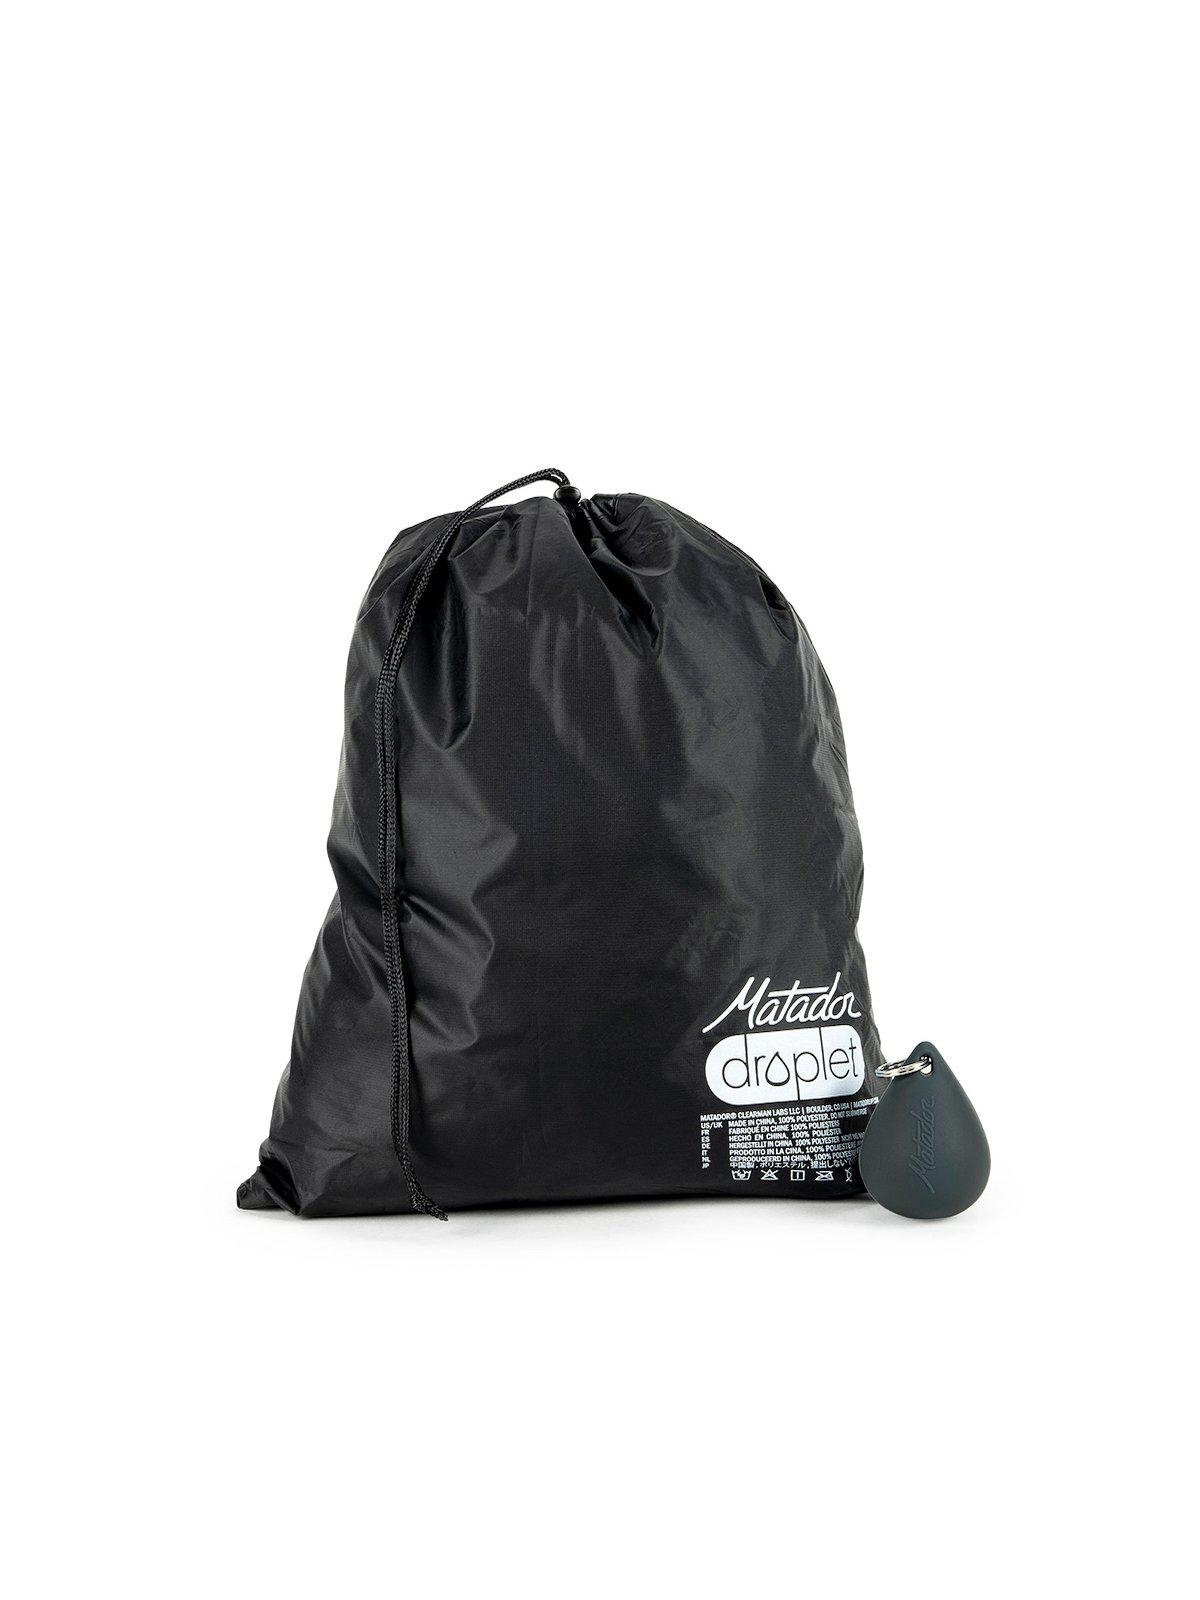 Matador Droplet Mini Dry / Wet Bag Black 3L - MORE by Morello Indonesia